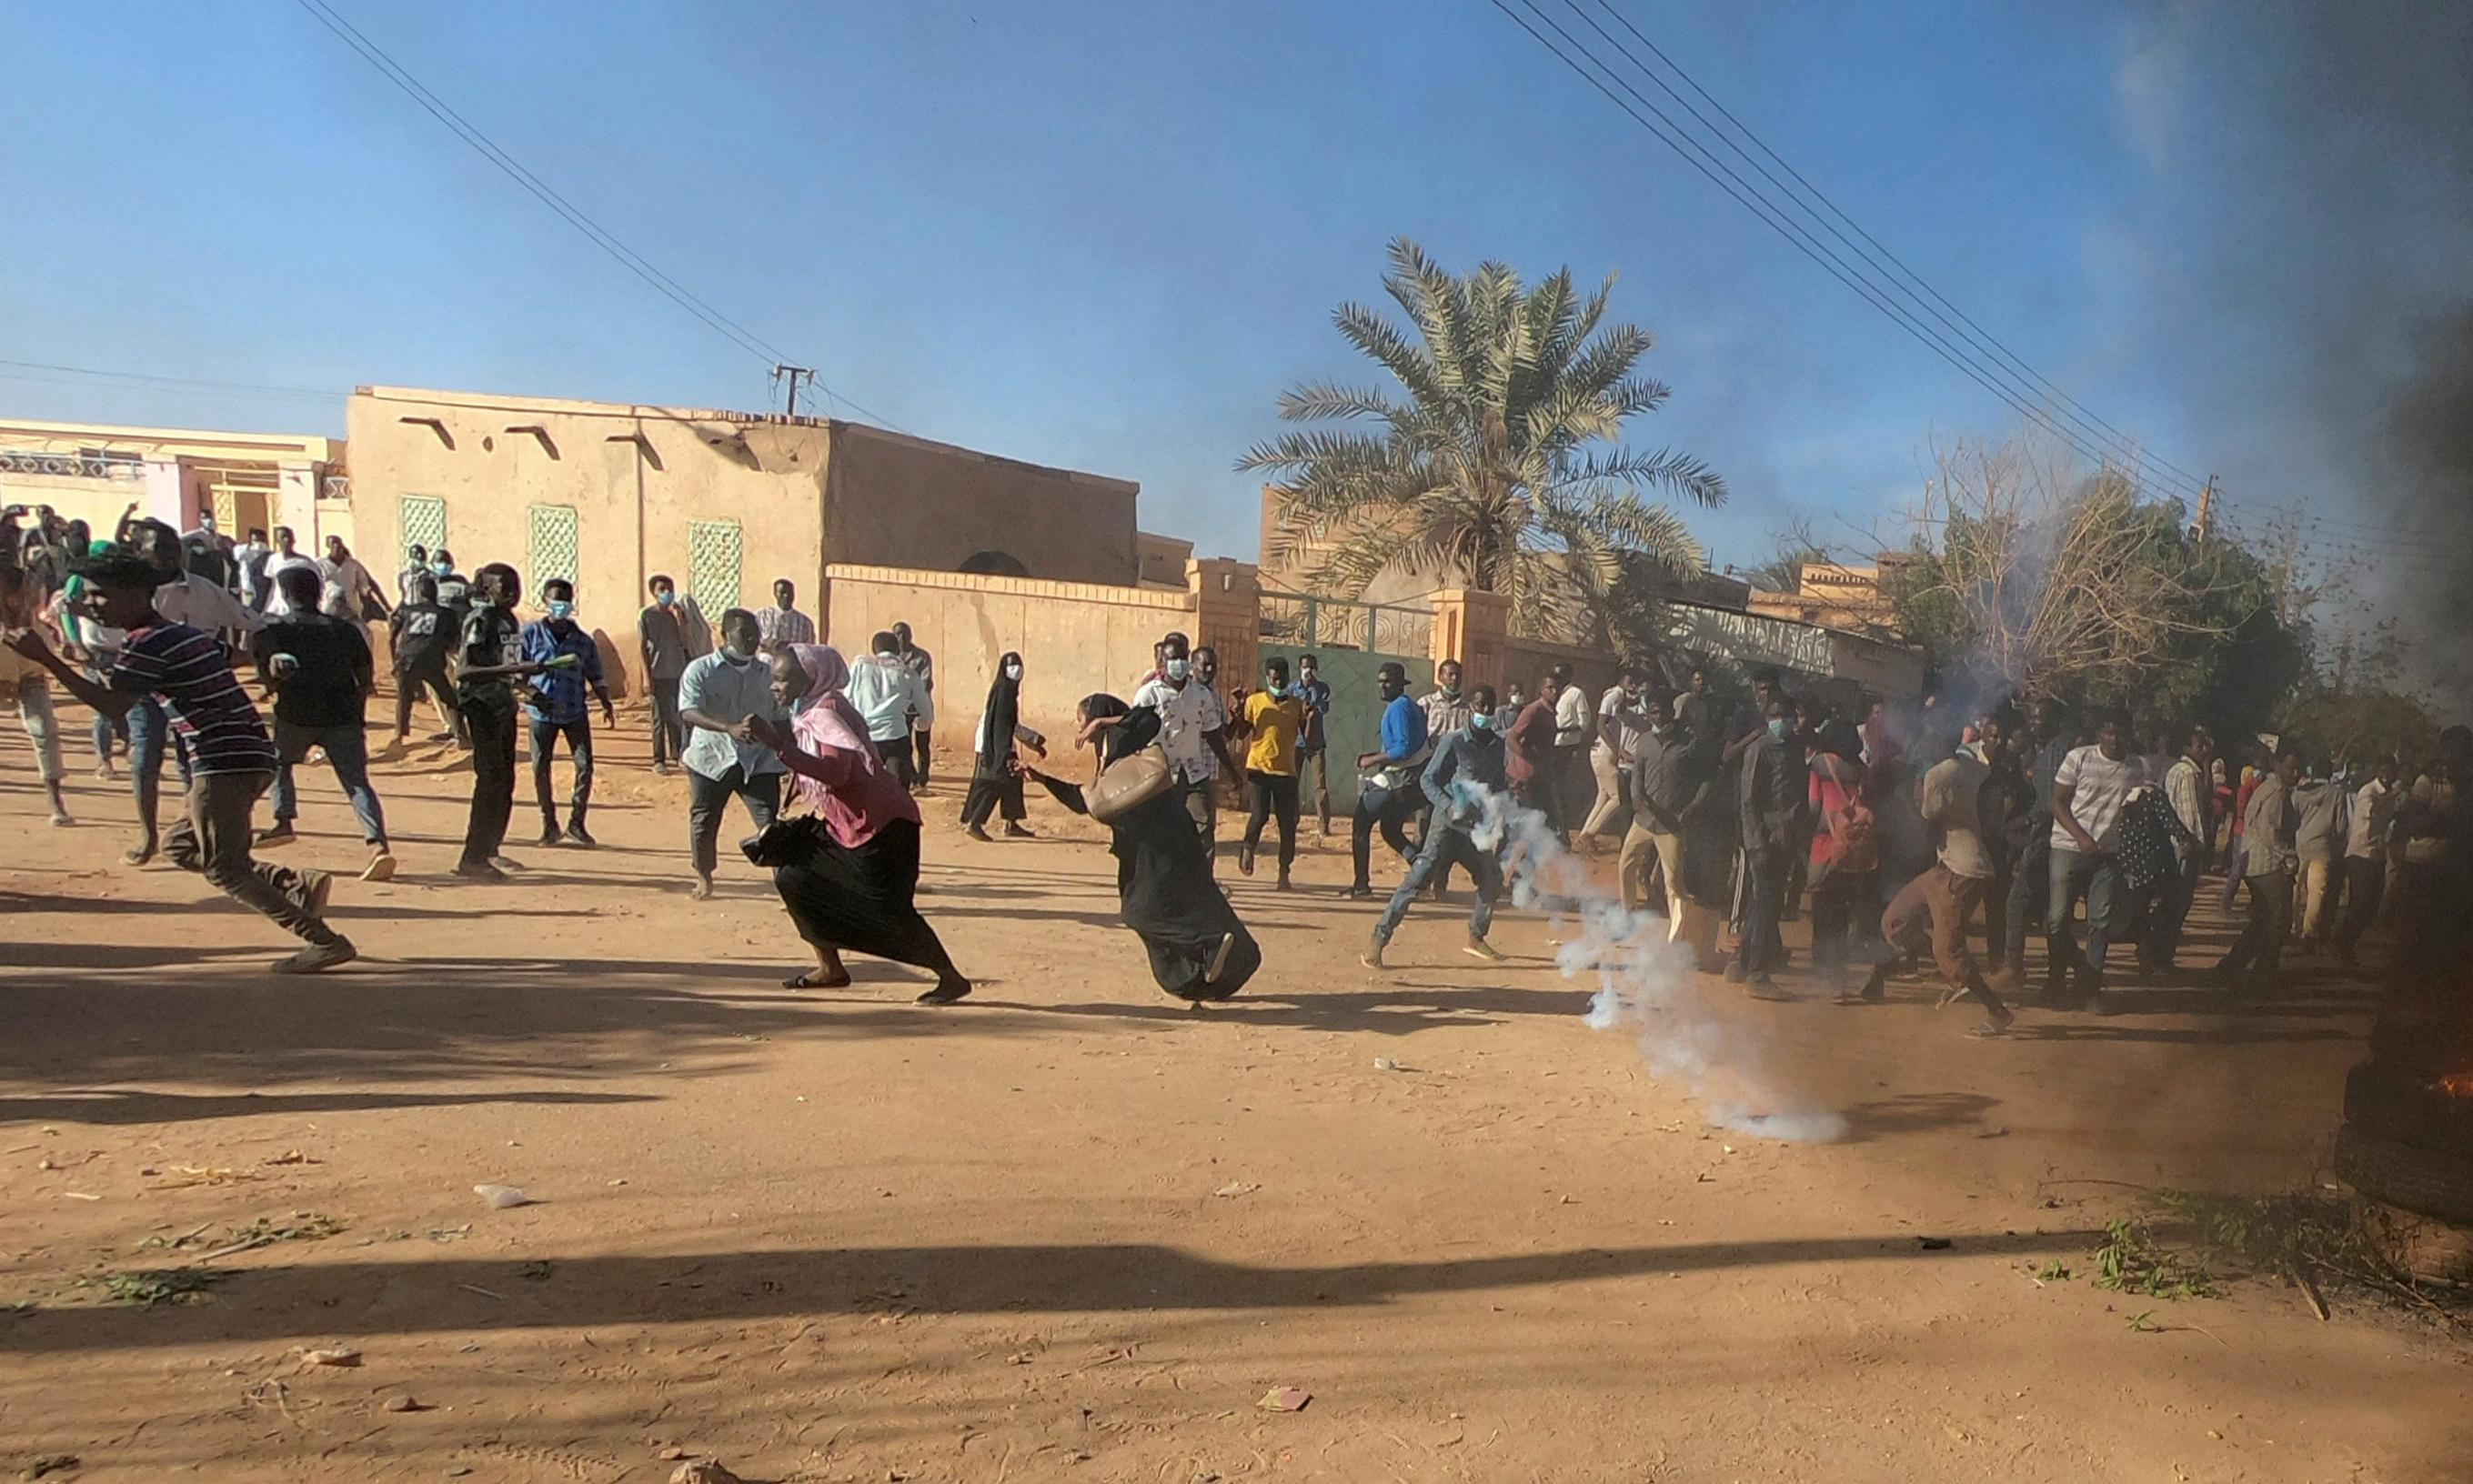 State of emergency declared in Sudan by under-fire president